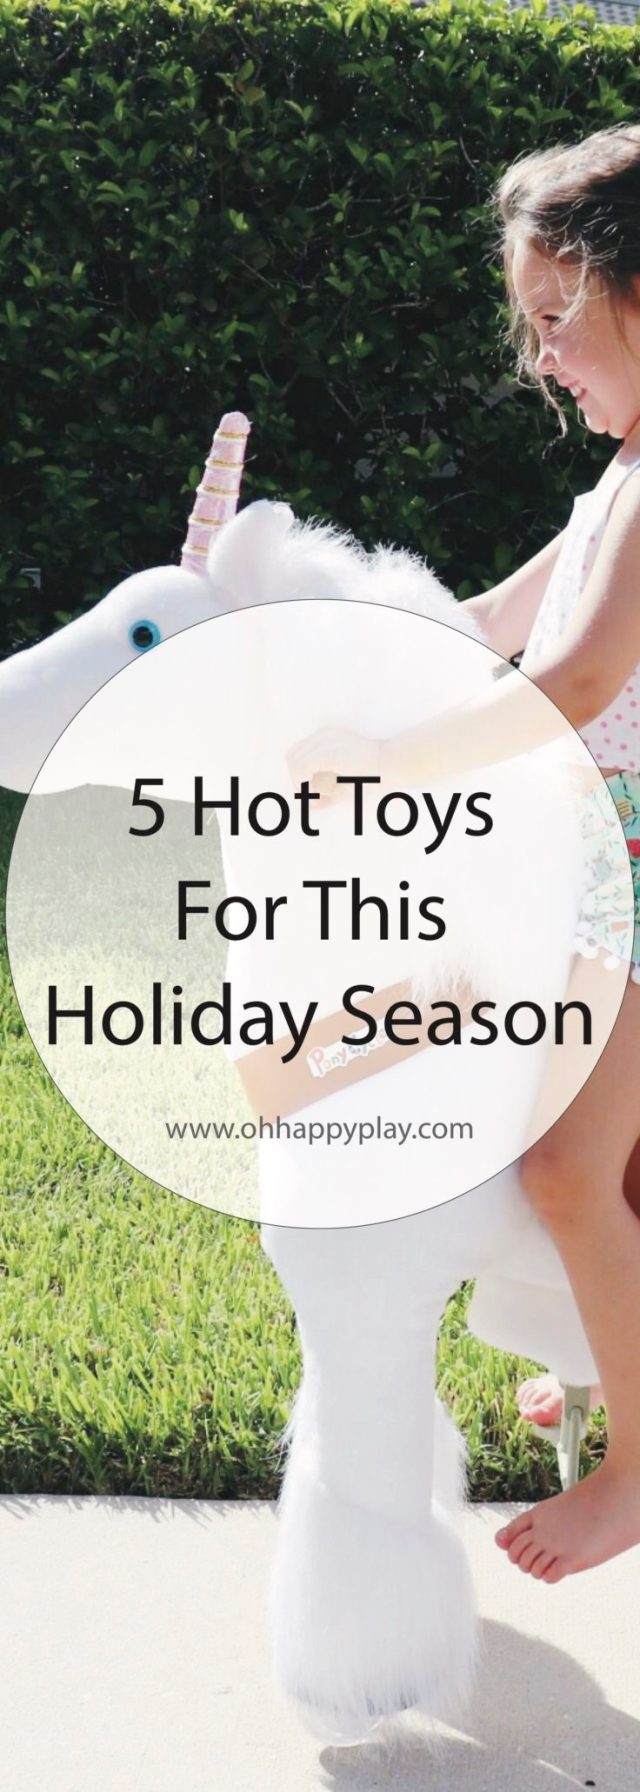 Looking for christmas gifts for little ones? Check out the 5 Hot Toys for This Holiday Season. Check it out now from Oh Happy Play!